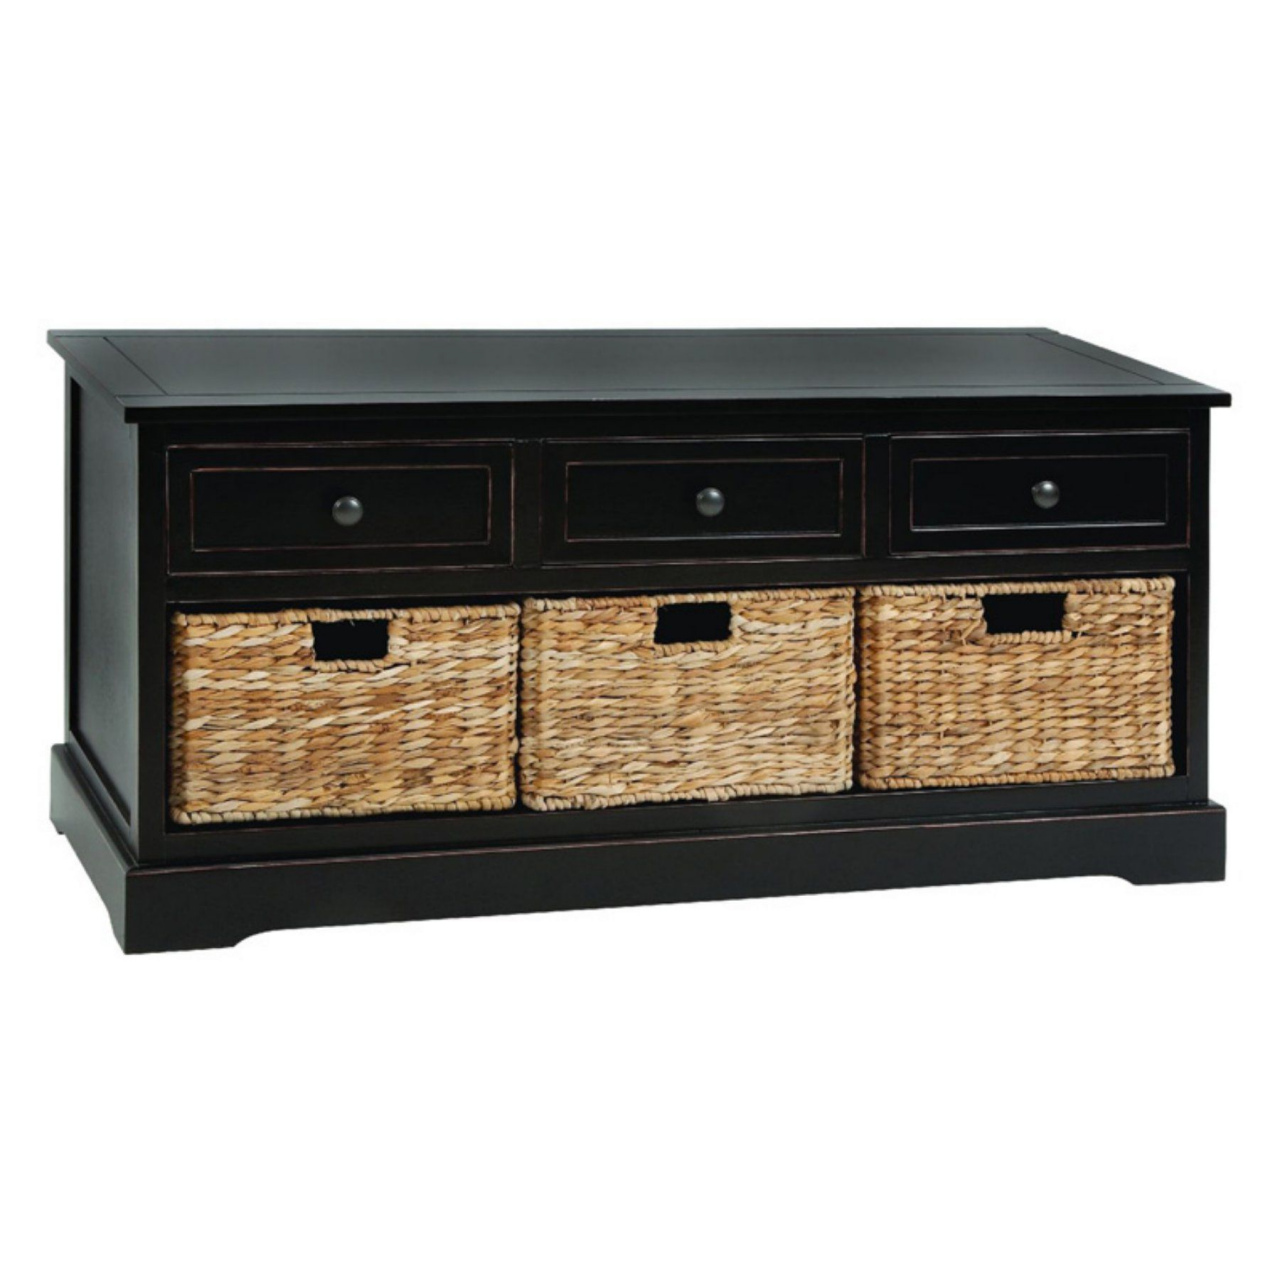 bench with storage baskets 3 drawer wood and wicker basket bench 42w x 20h in in 2019 durch bench with storage baskets